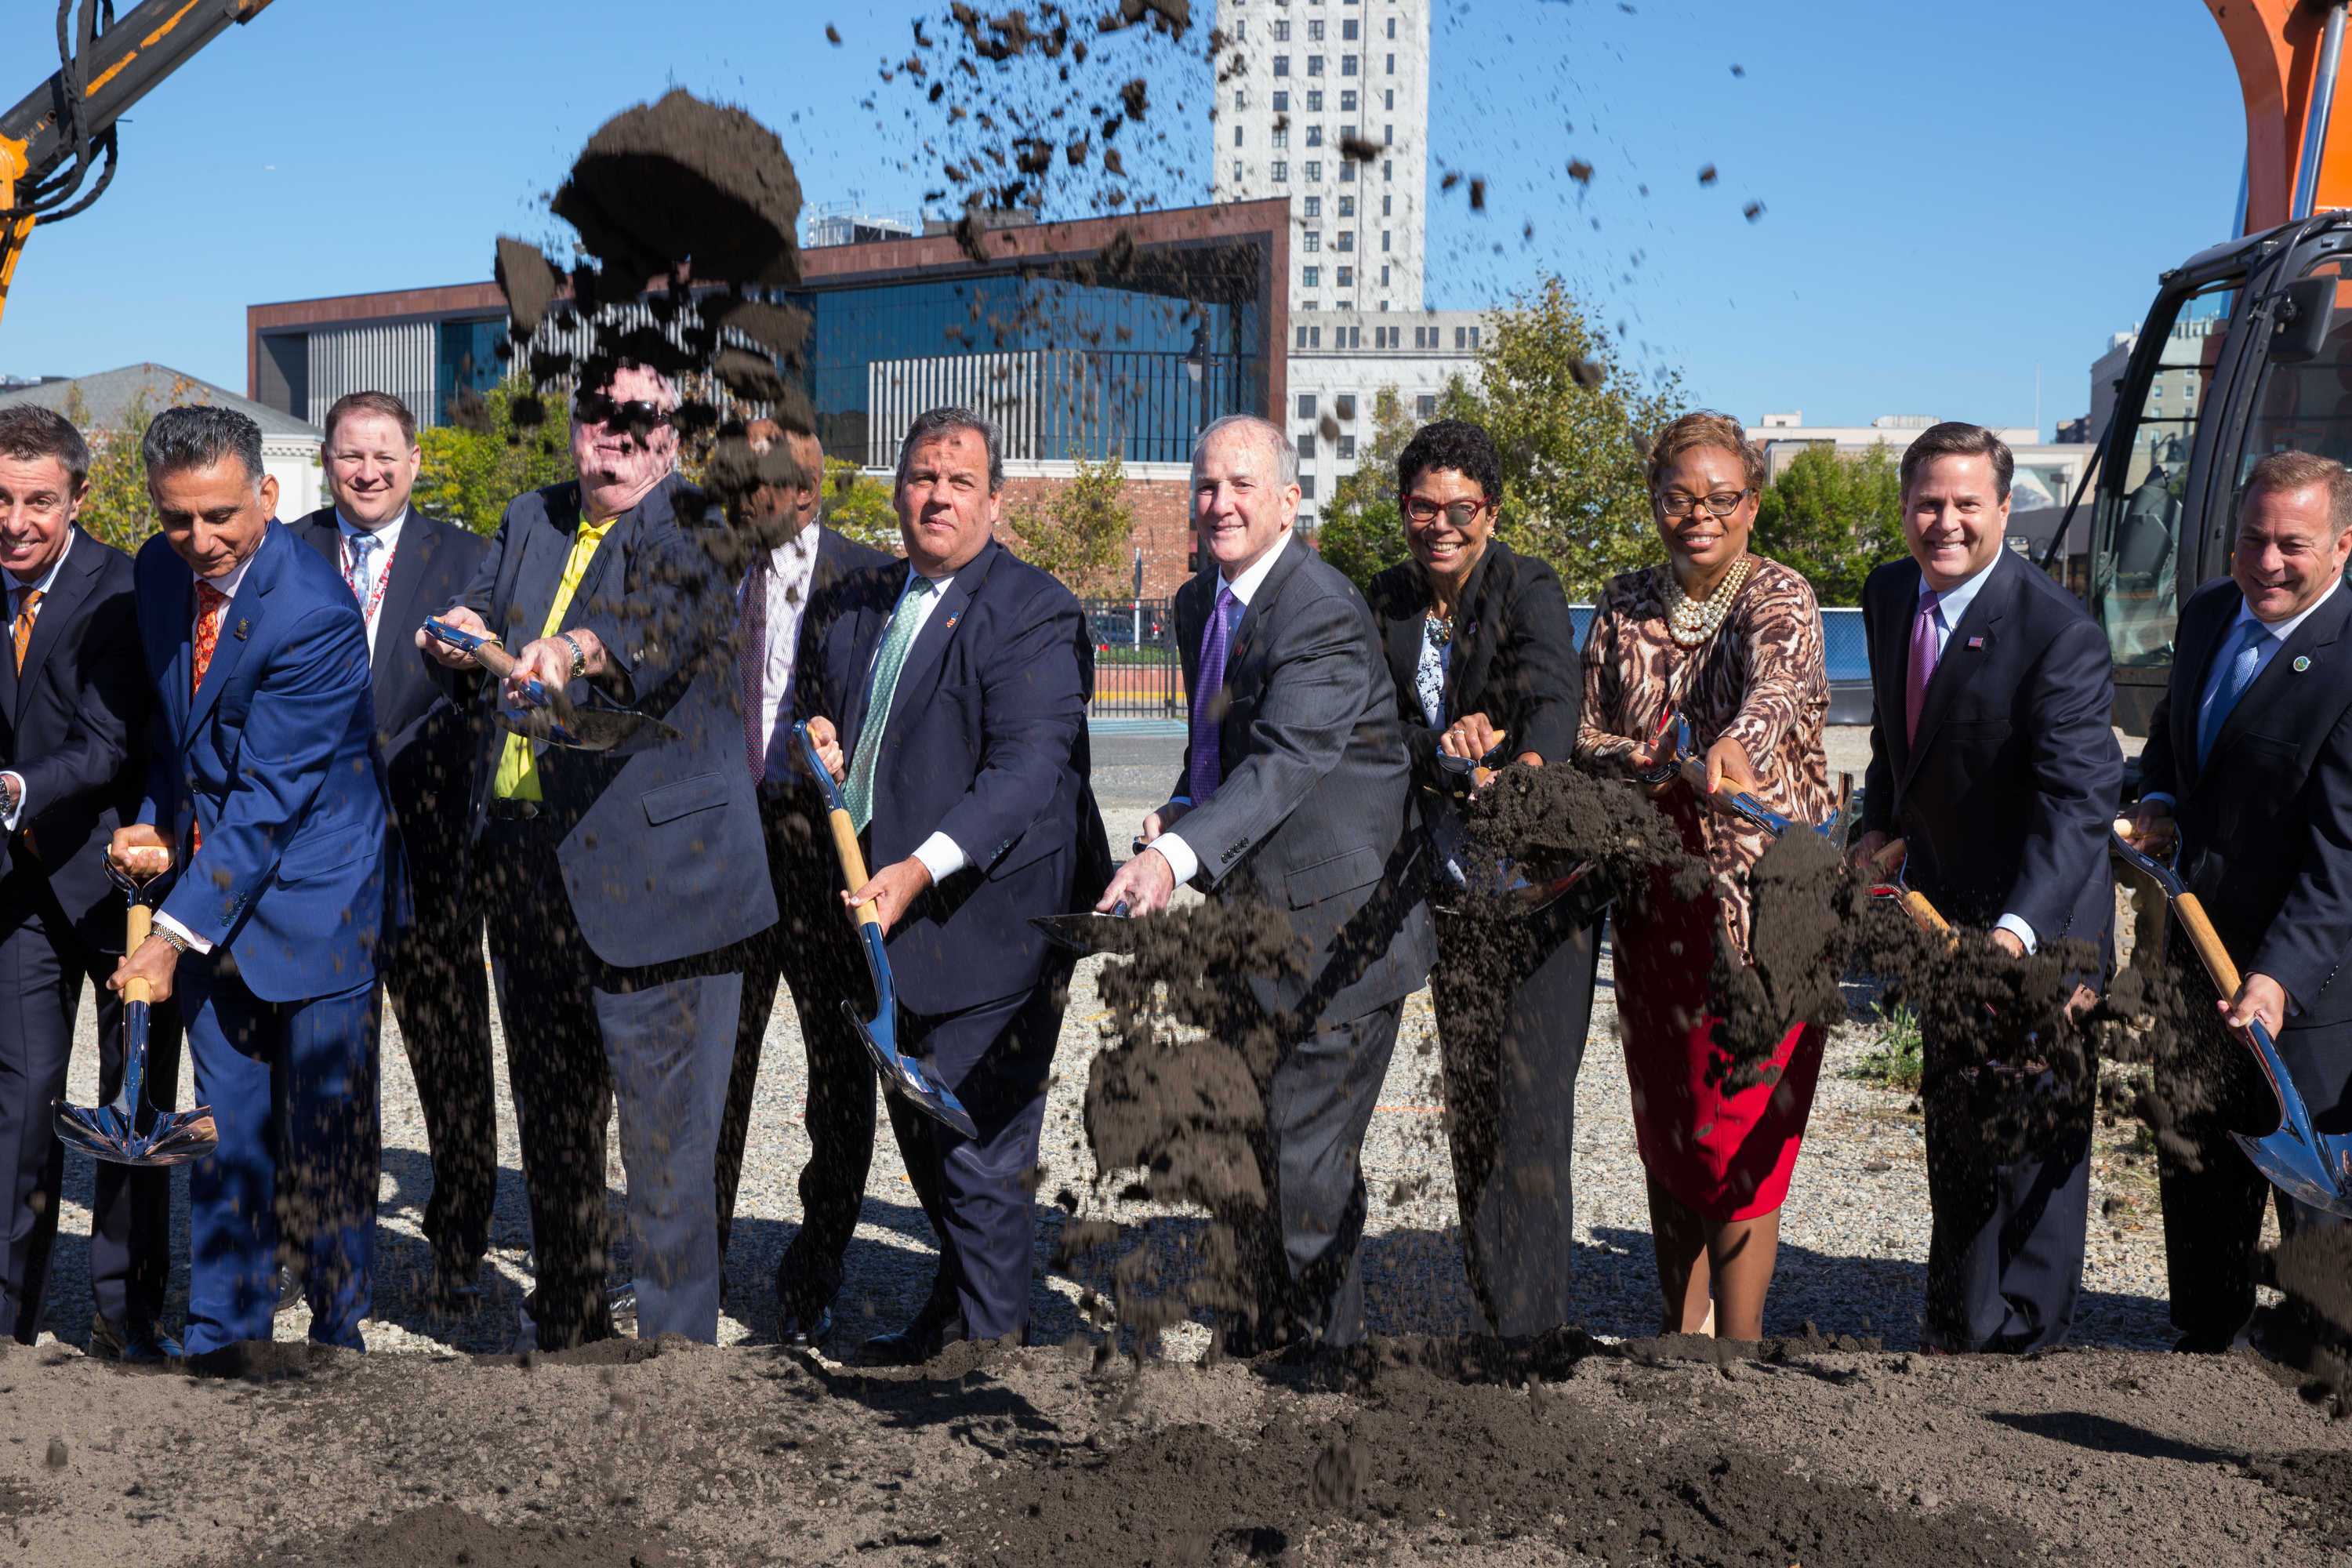 (Left to Right) Ali. A. Houshmand, Rowan University president , Chad Bruner, chairman of the Rowan University Board of Trustees; Jack Collins, former GOP speaker of the New Jersey State Assembly,; Gov. Christie,;Robert Barchi, president of Rutgers University; Phoebe Haddon, chancellor of Rutgers-Camden; Camden Mayor Dana Redd,; Rep. Donald Norcross, and Freeholder Director Louis Cappelli participate in the ceremonial groundbreaking for the Rutgers-Rowan Health Sciences Building, at the corner of MLK BLvd. and Broadway in Camden, New Jersey, Thursday, Oct. 19, 2017.